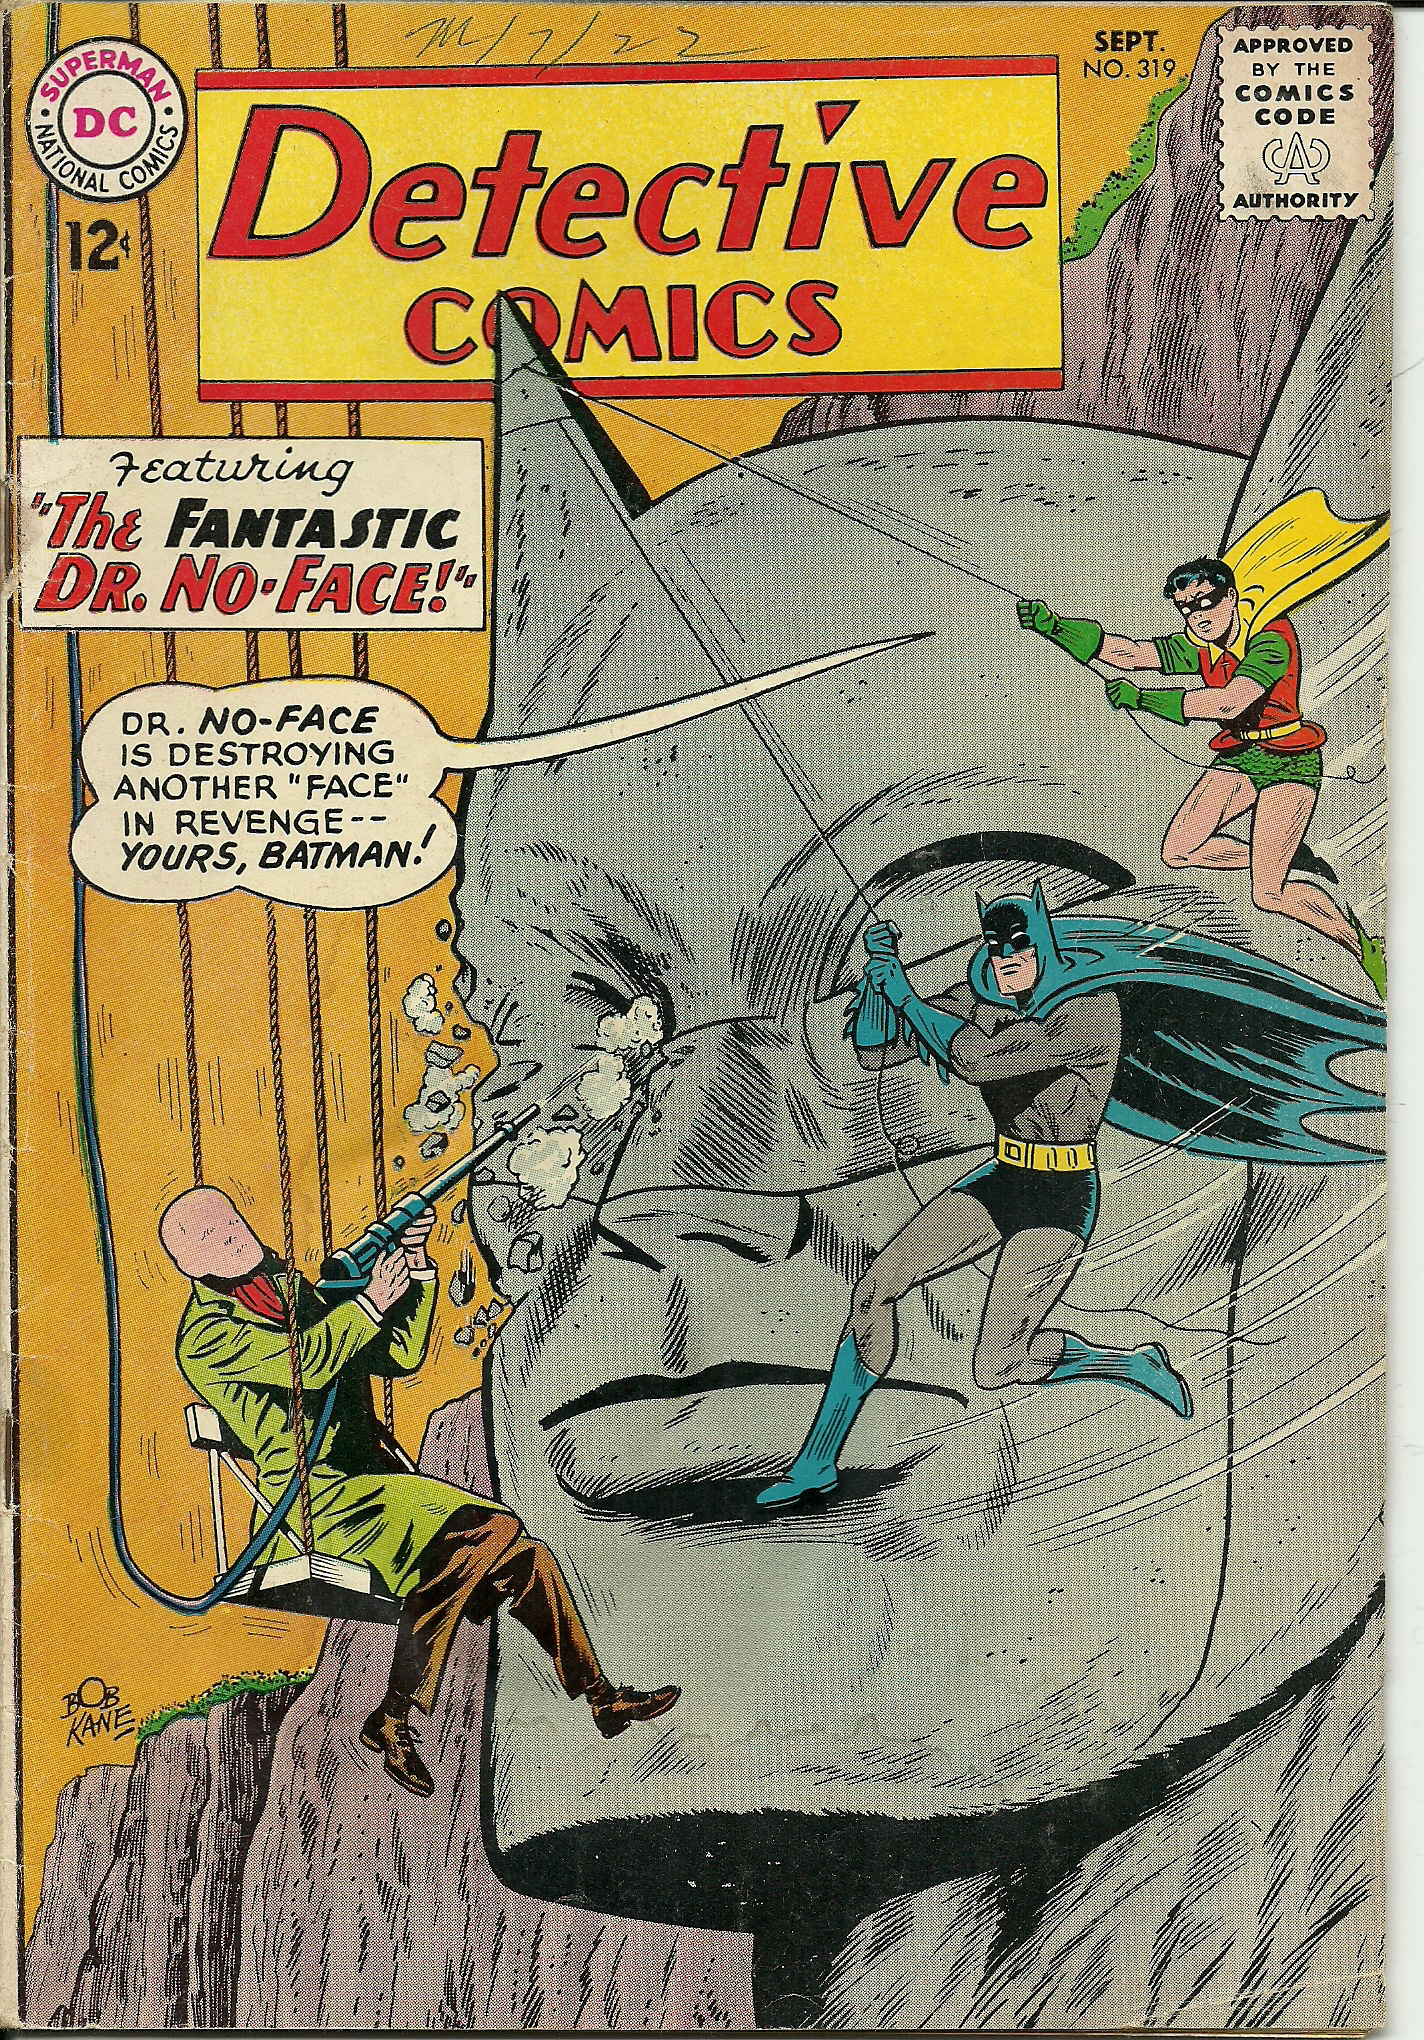 Detective Comics–No. 319–September 1963. In good condition. All ...